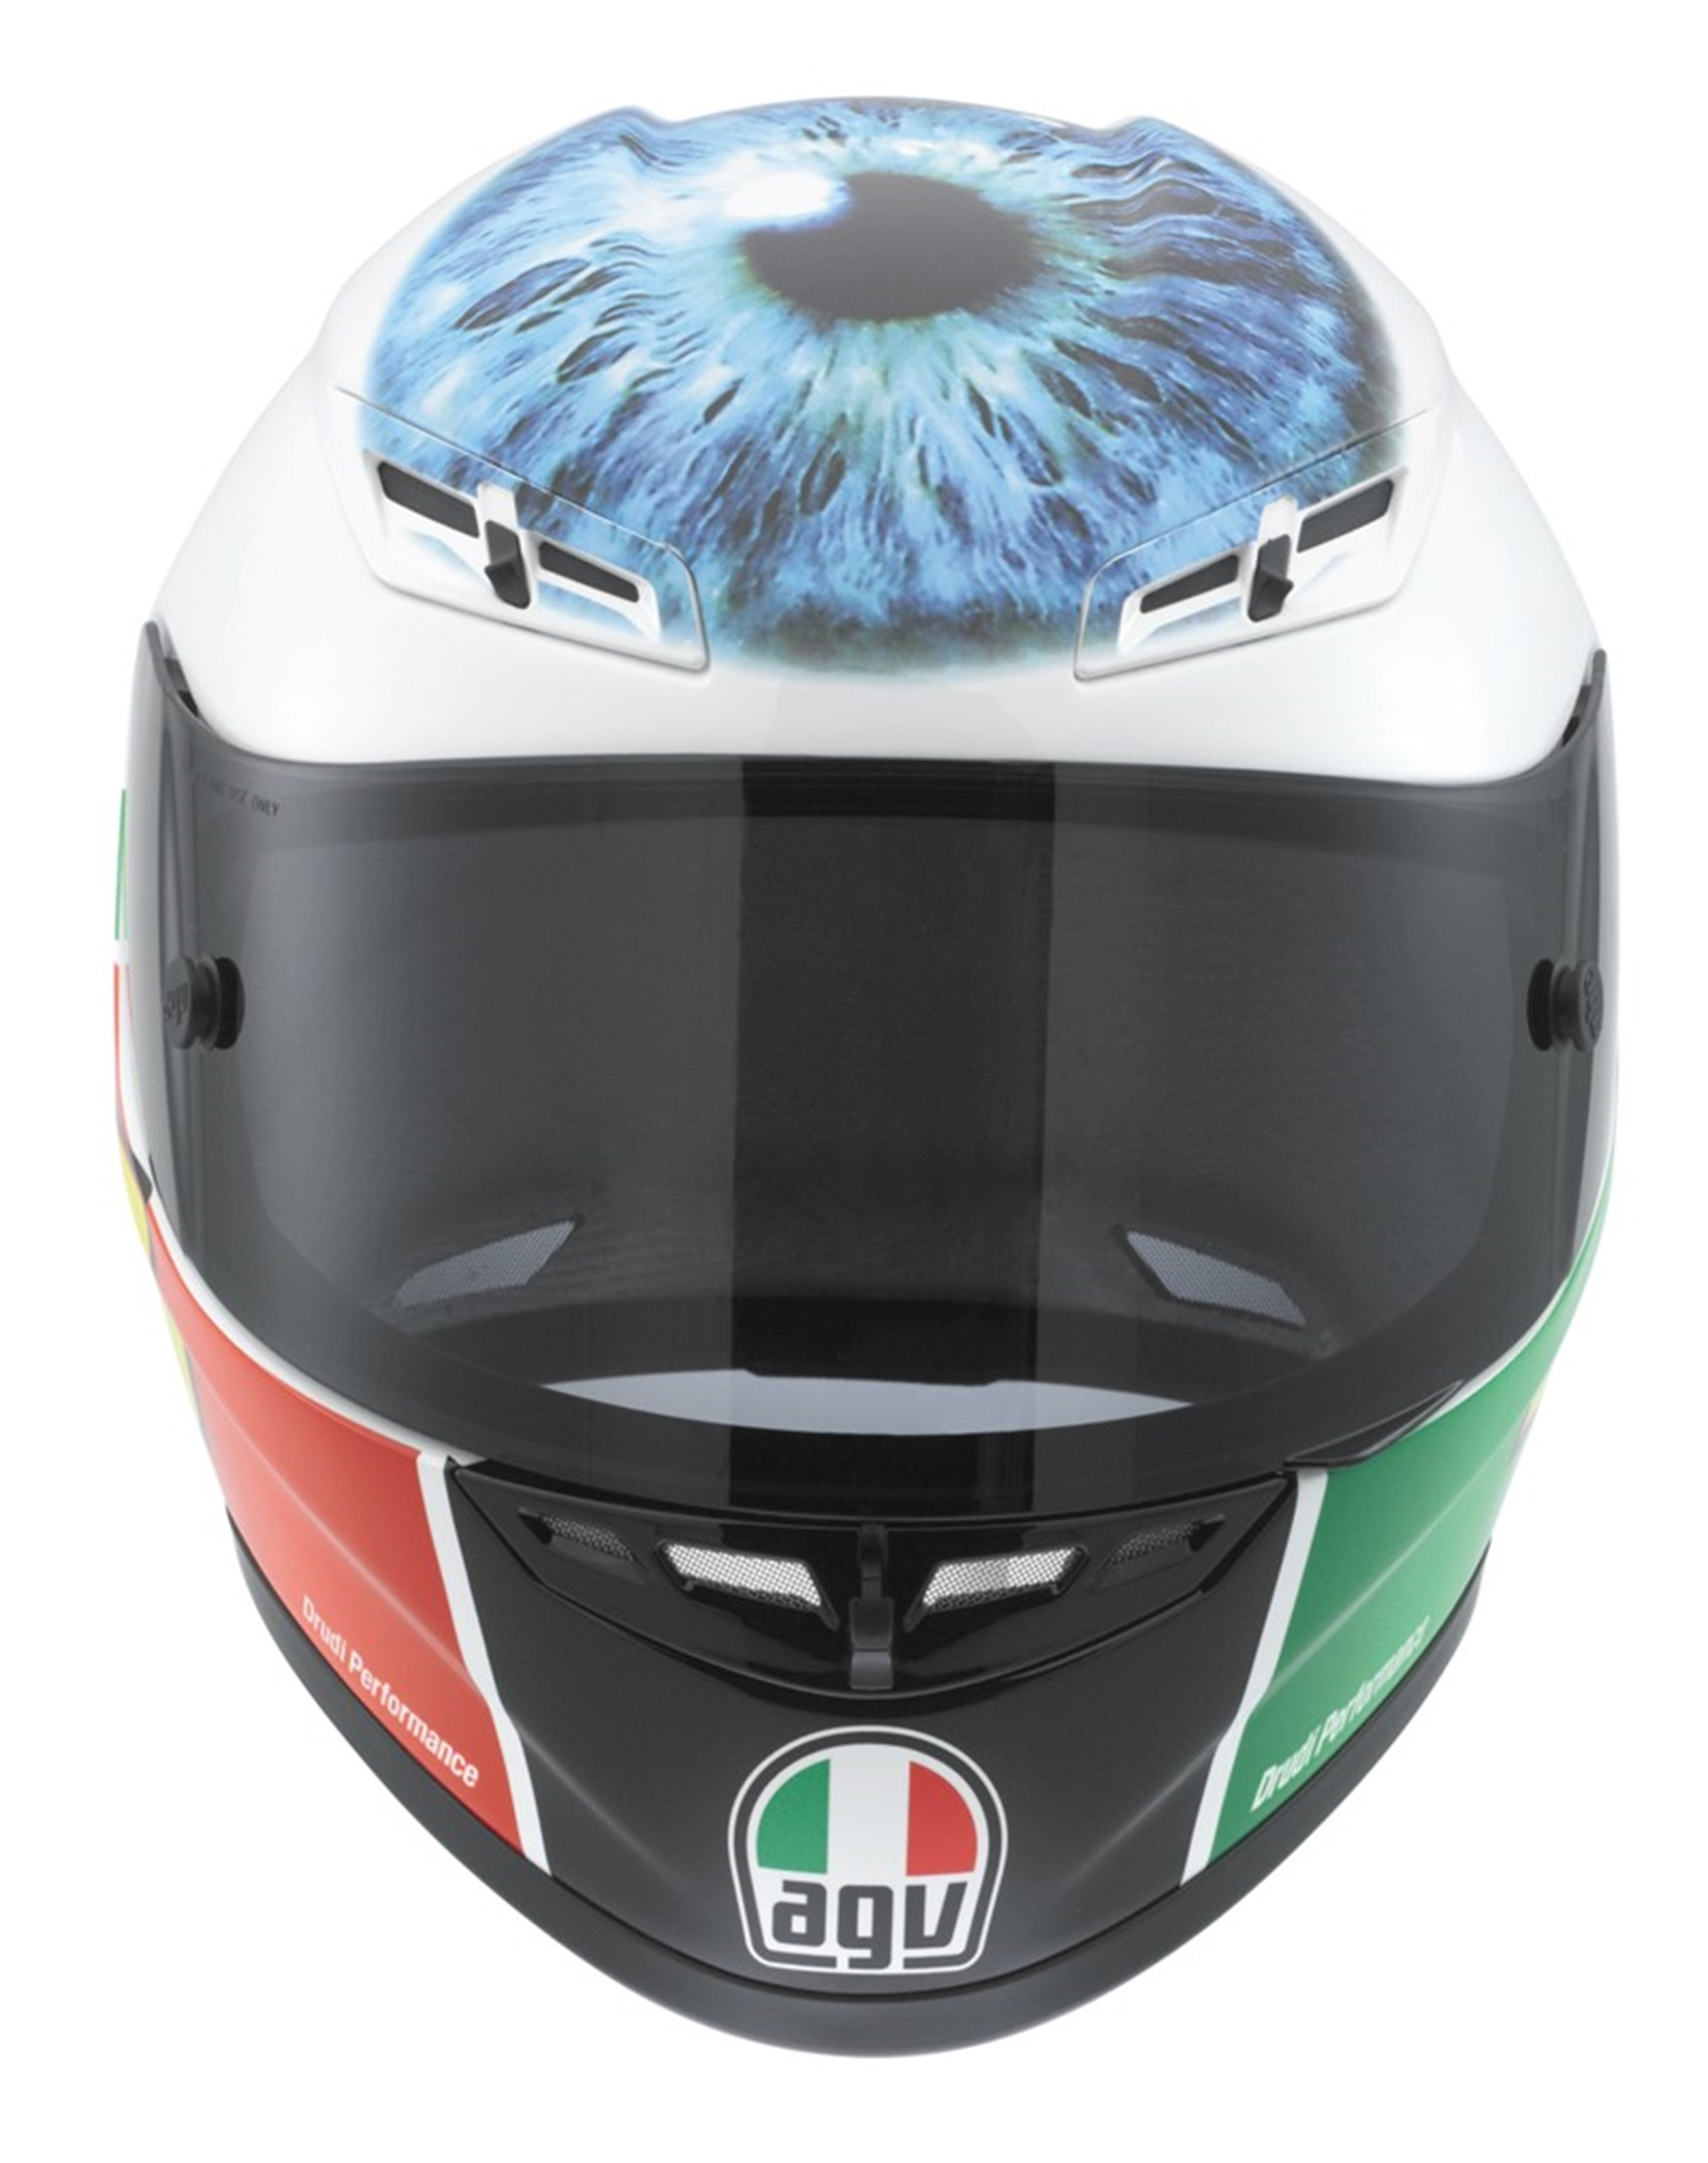 Limited-edition Rossi 'eye helmet' replica 2011